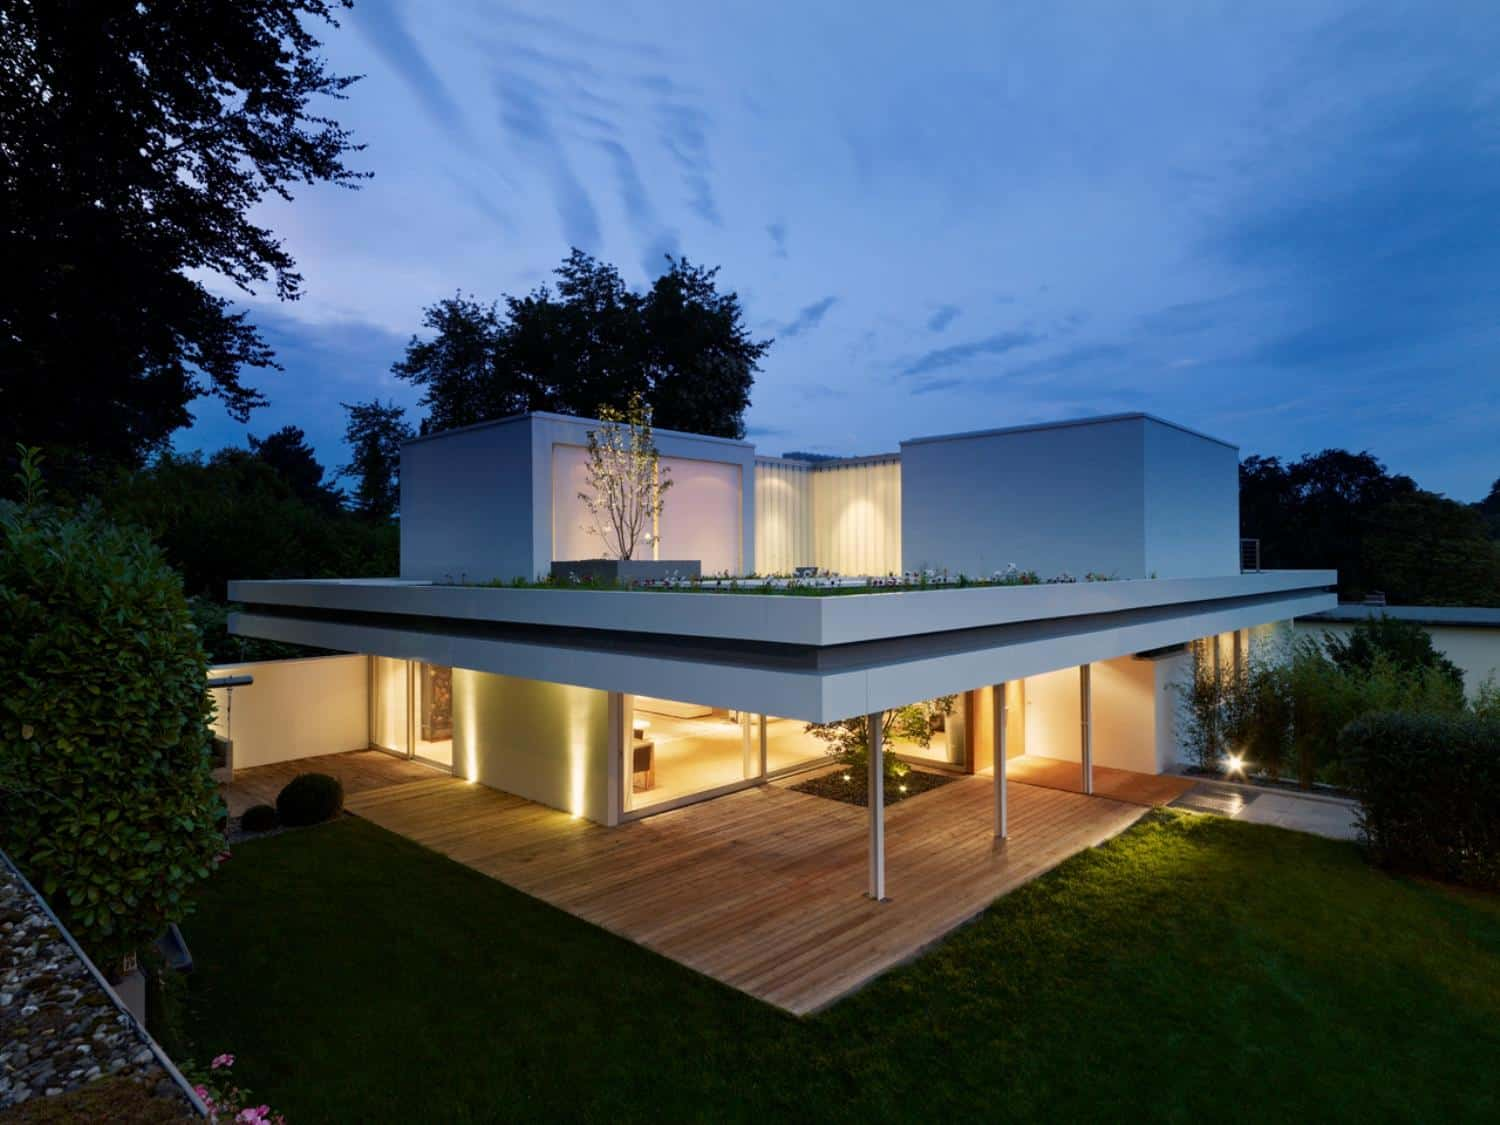 Contemporary Renovation and Additon to 60's Bungalow